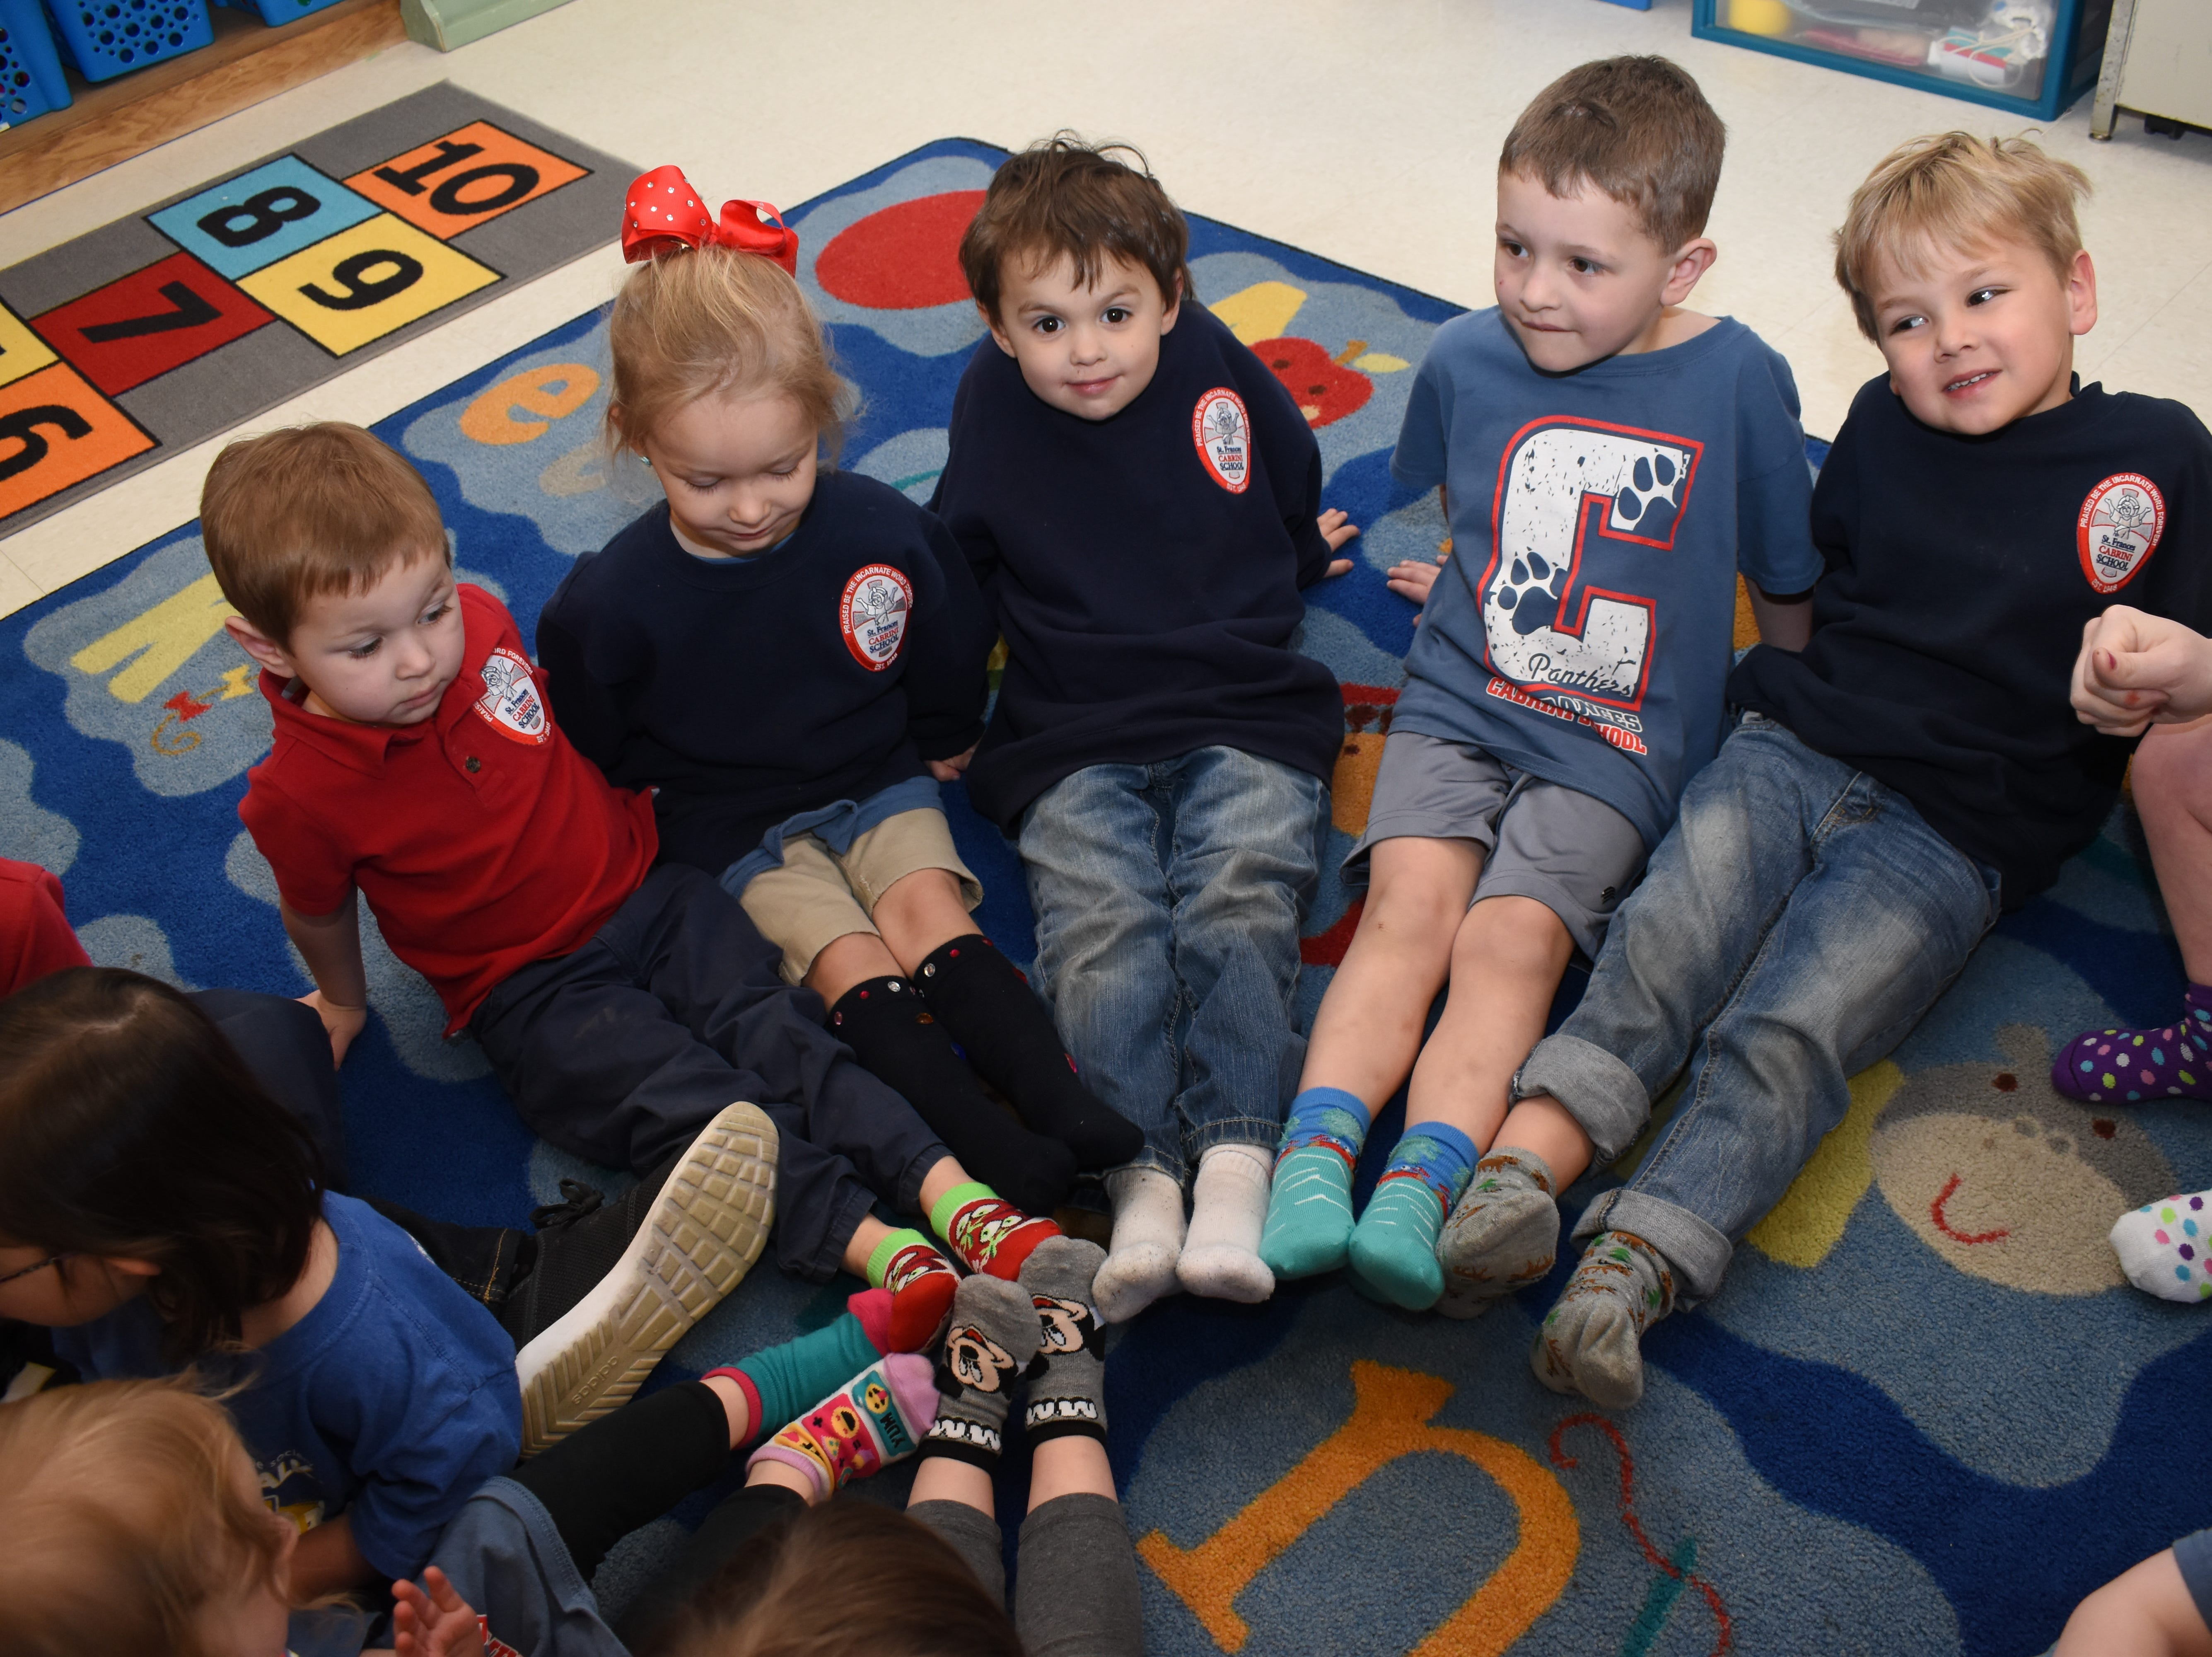 """Students at St. Frances Cabrini School celebrated World Down Syndrome Day Thursday, March 21, 2019. """"Rock Your Socks"""" was the theme for the day. For $2 students could wear crazy socks with jeans and a spirit shirt. Gail Callahan, a pre-Kindergarten three teacher, read a book to her class written by another Cabrini teacher Ashley Distefano, titled """"The Upside of Downs."""" The book was written for Distefano's daughter Elizabeth Butler, 4, a student of Callahan's, who has Down syndrome. The book also features another Cabrini Student who has Down, Sydney Rud, 4."""